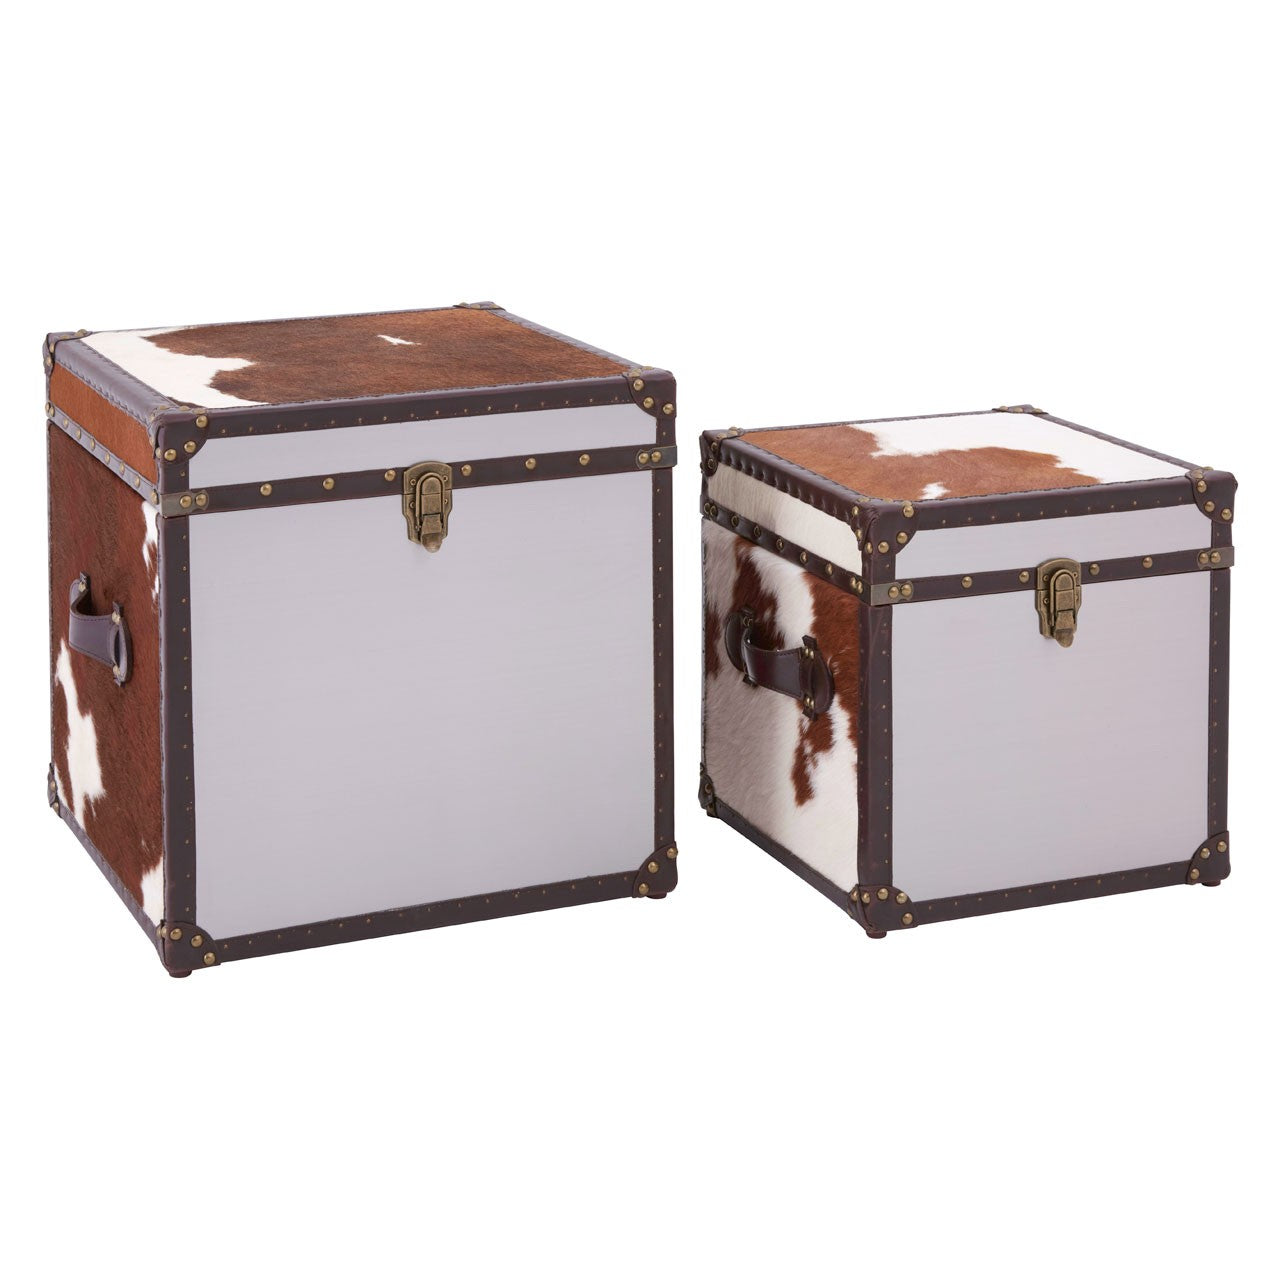 Kensington Townhouse Storage Trunks (Set of 2)